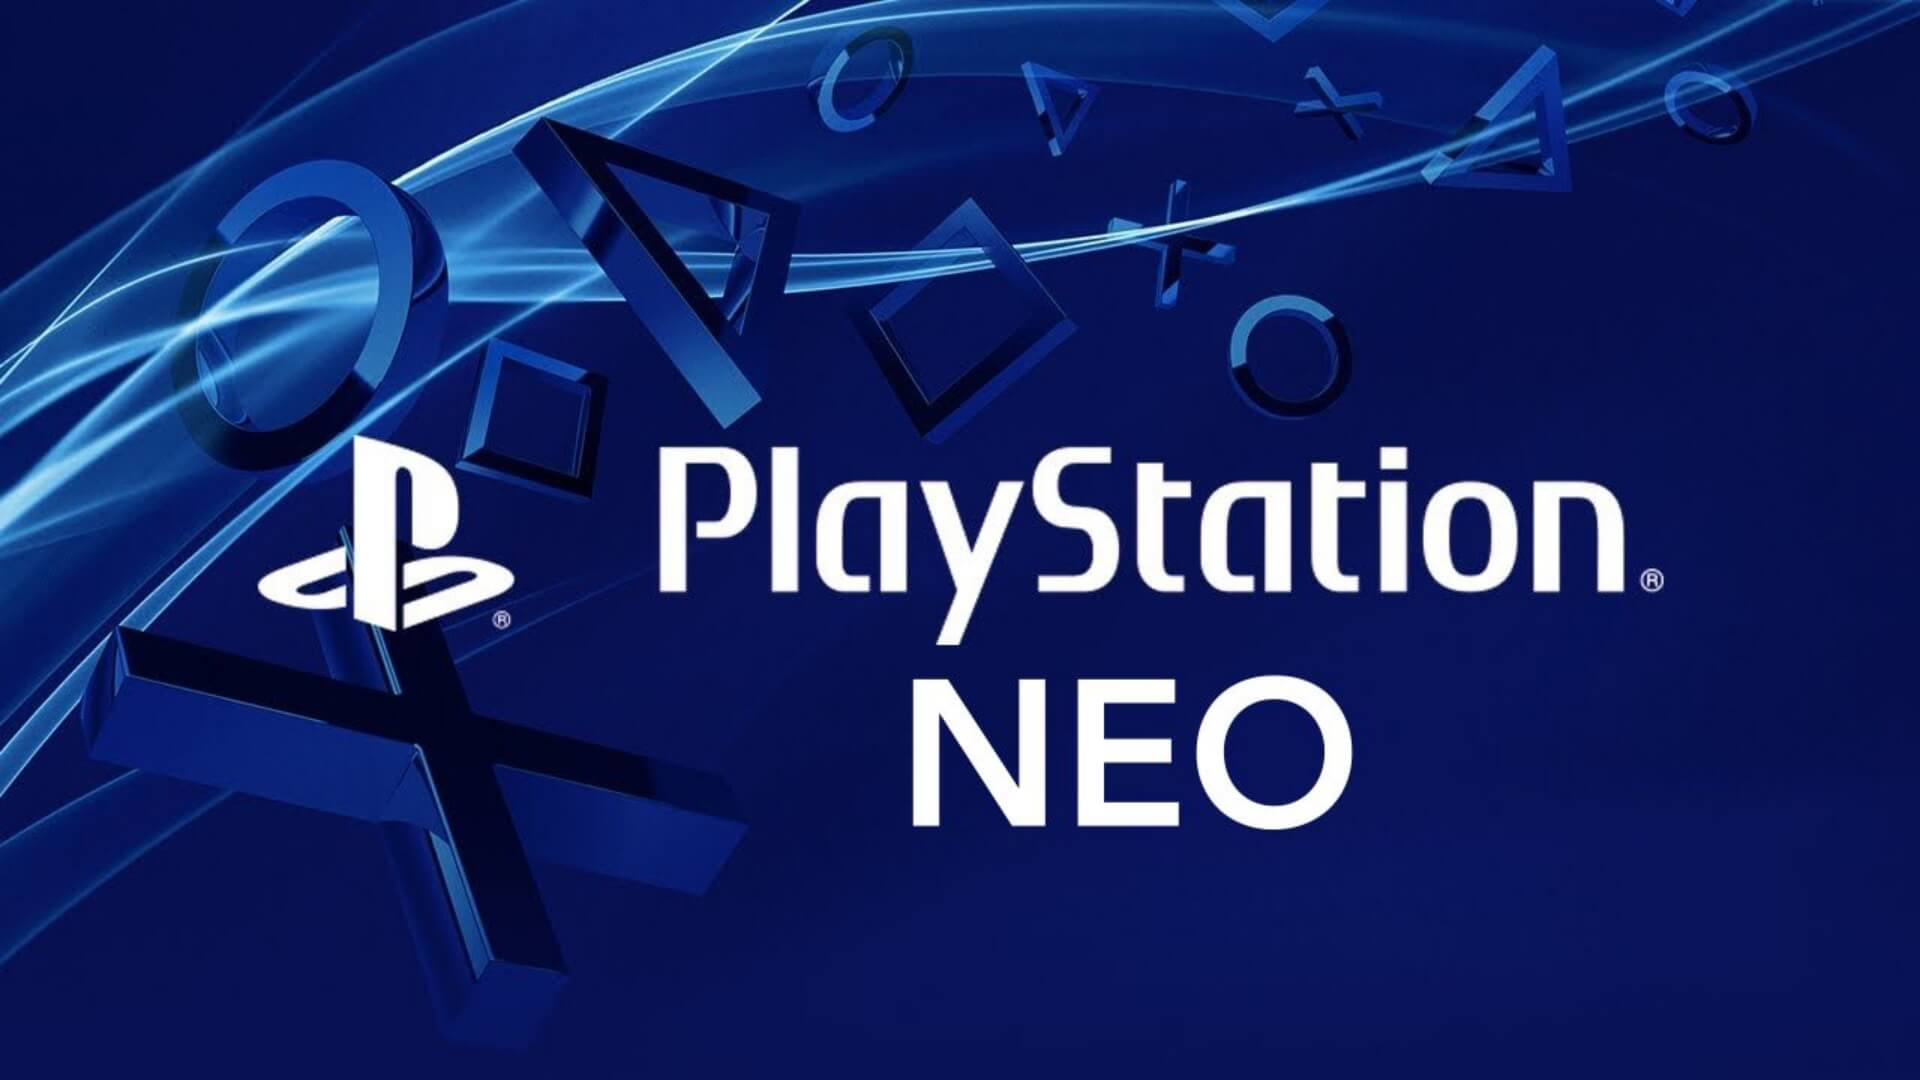 Rumor: PlayStation Neo to be Revealed in September